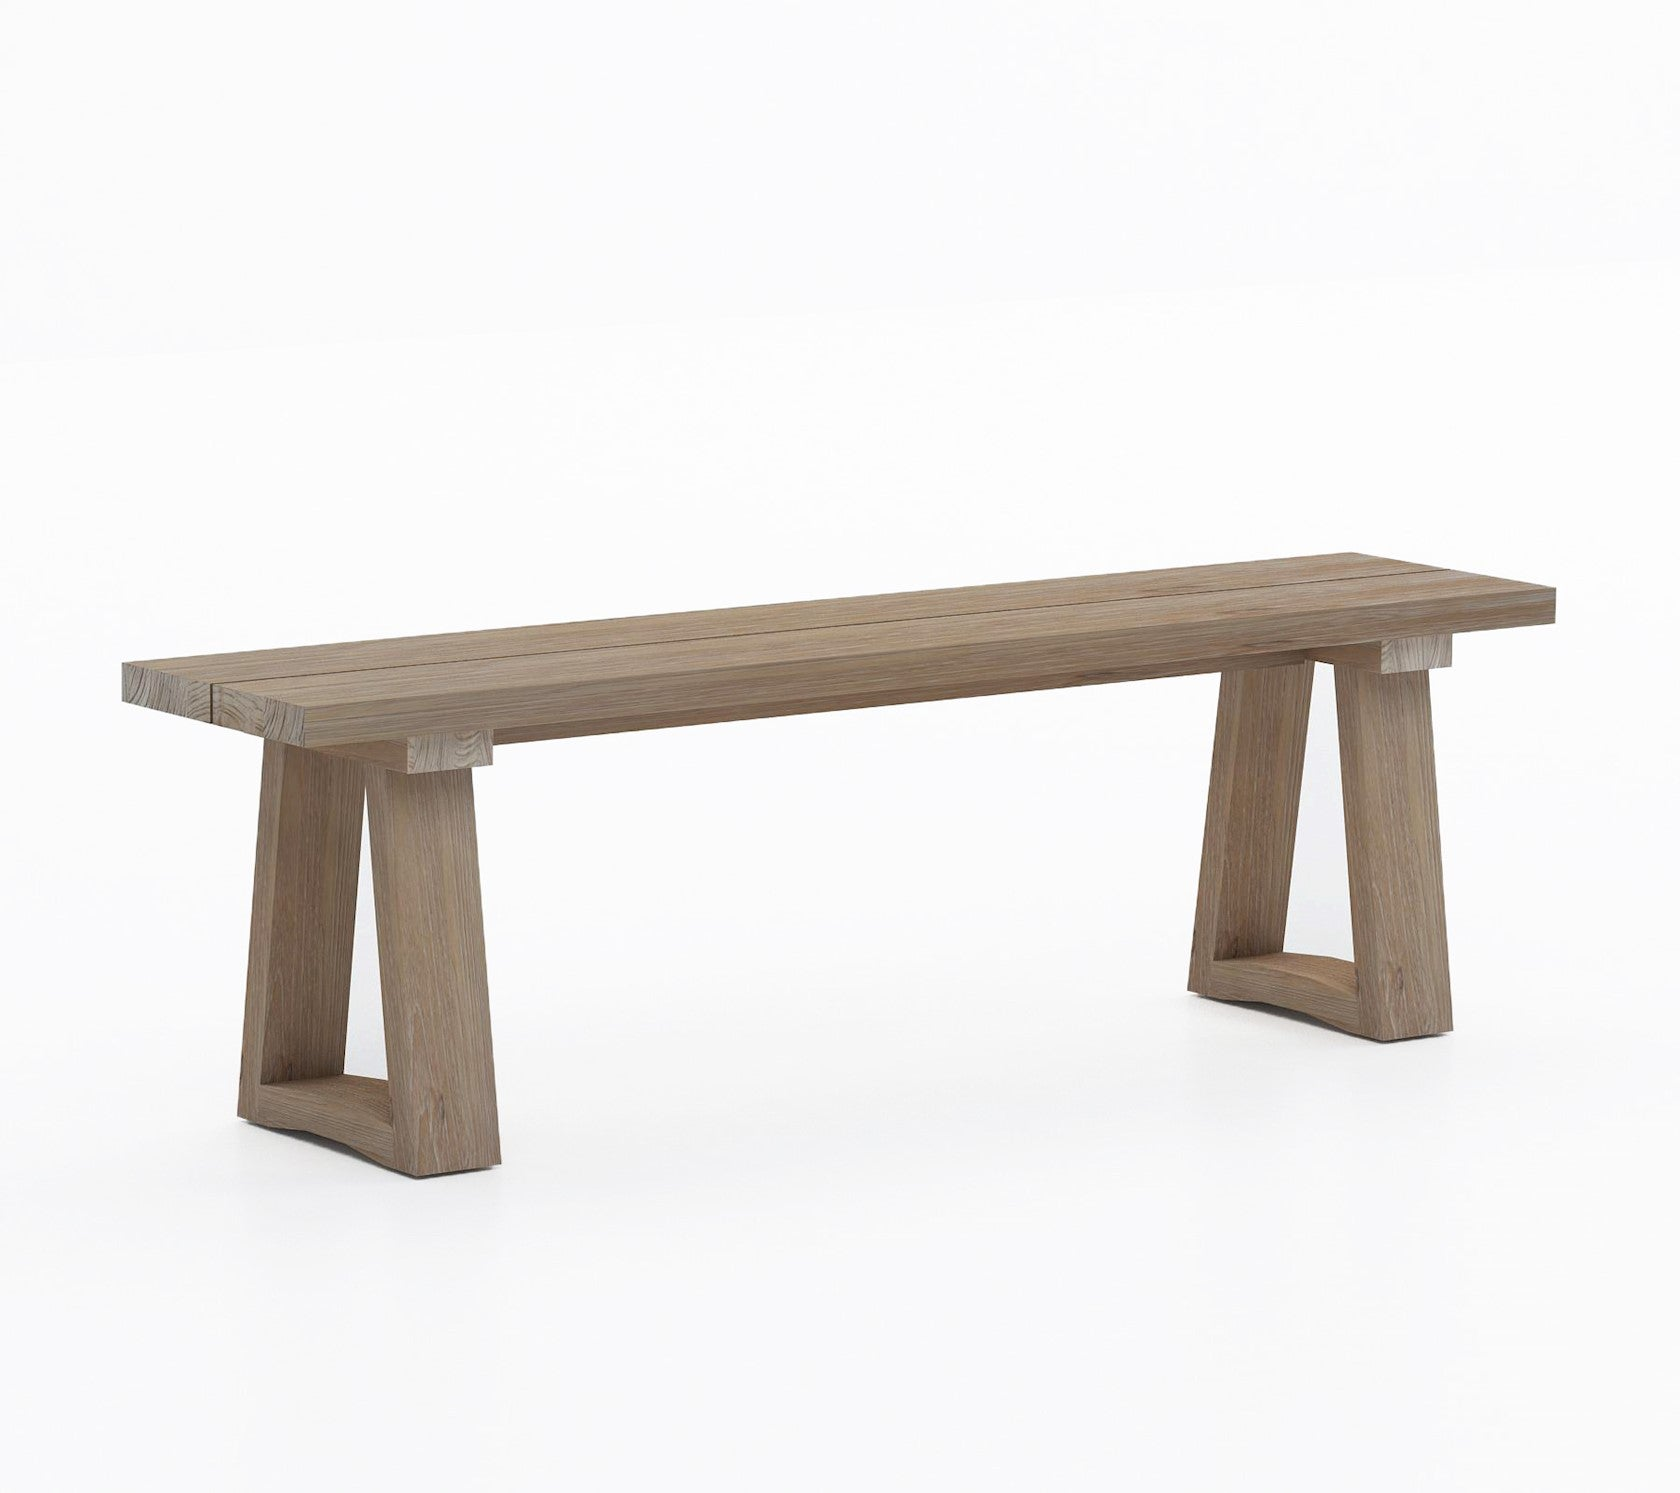 OUTDOOR BENCH 'ALBA' - Outdoor Benches - SCAPA HOME - SCAPA HOME OFFICIAL